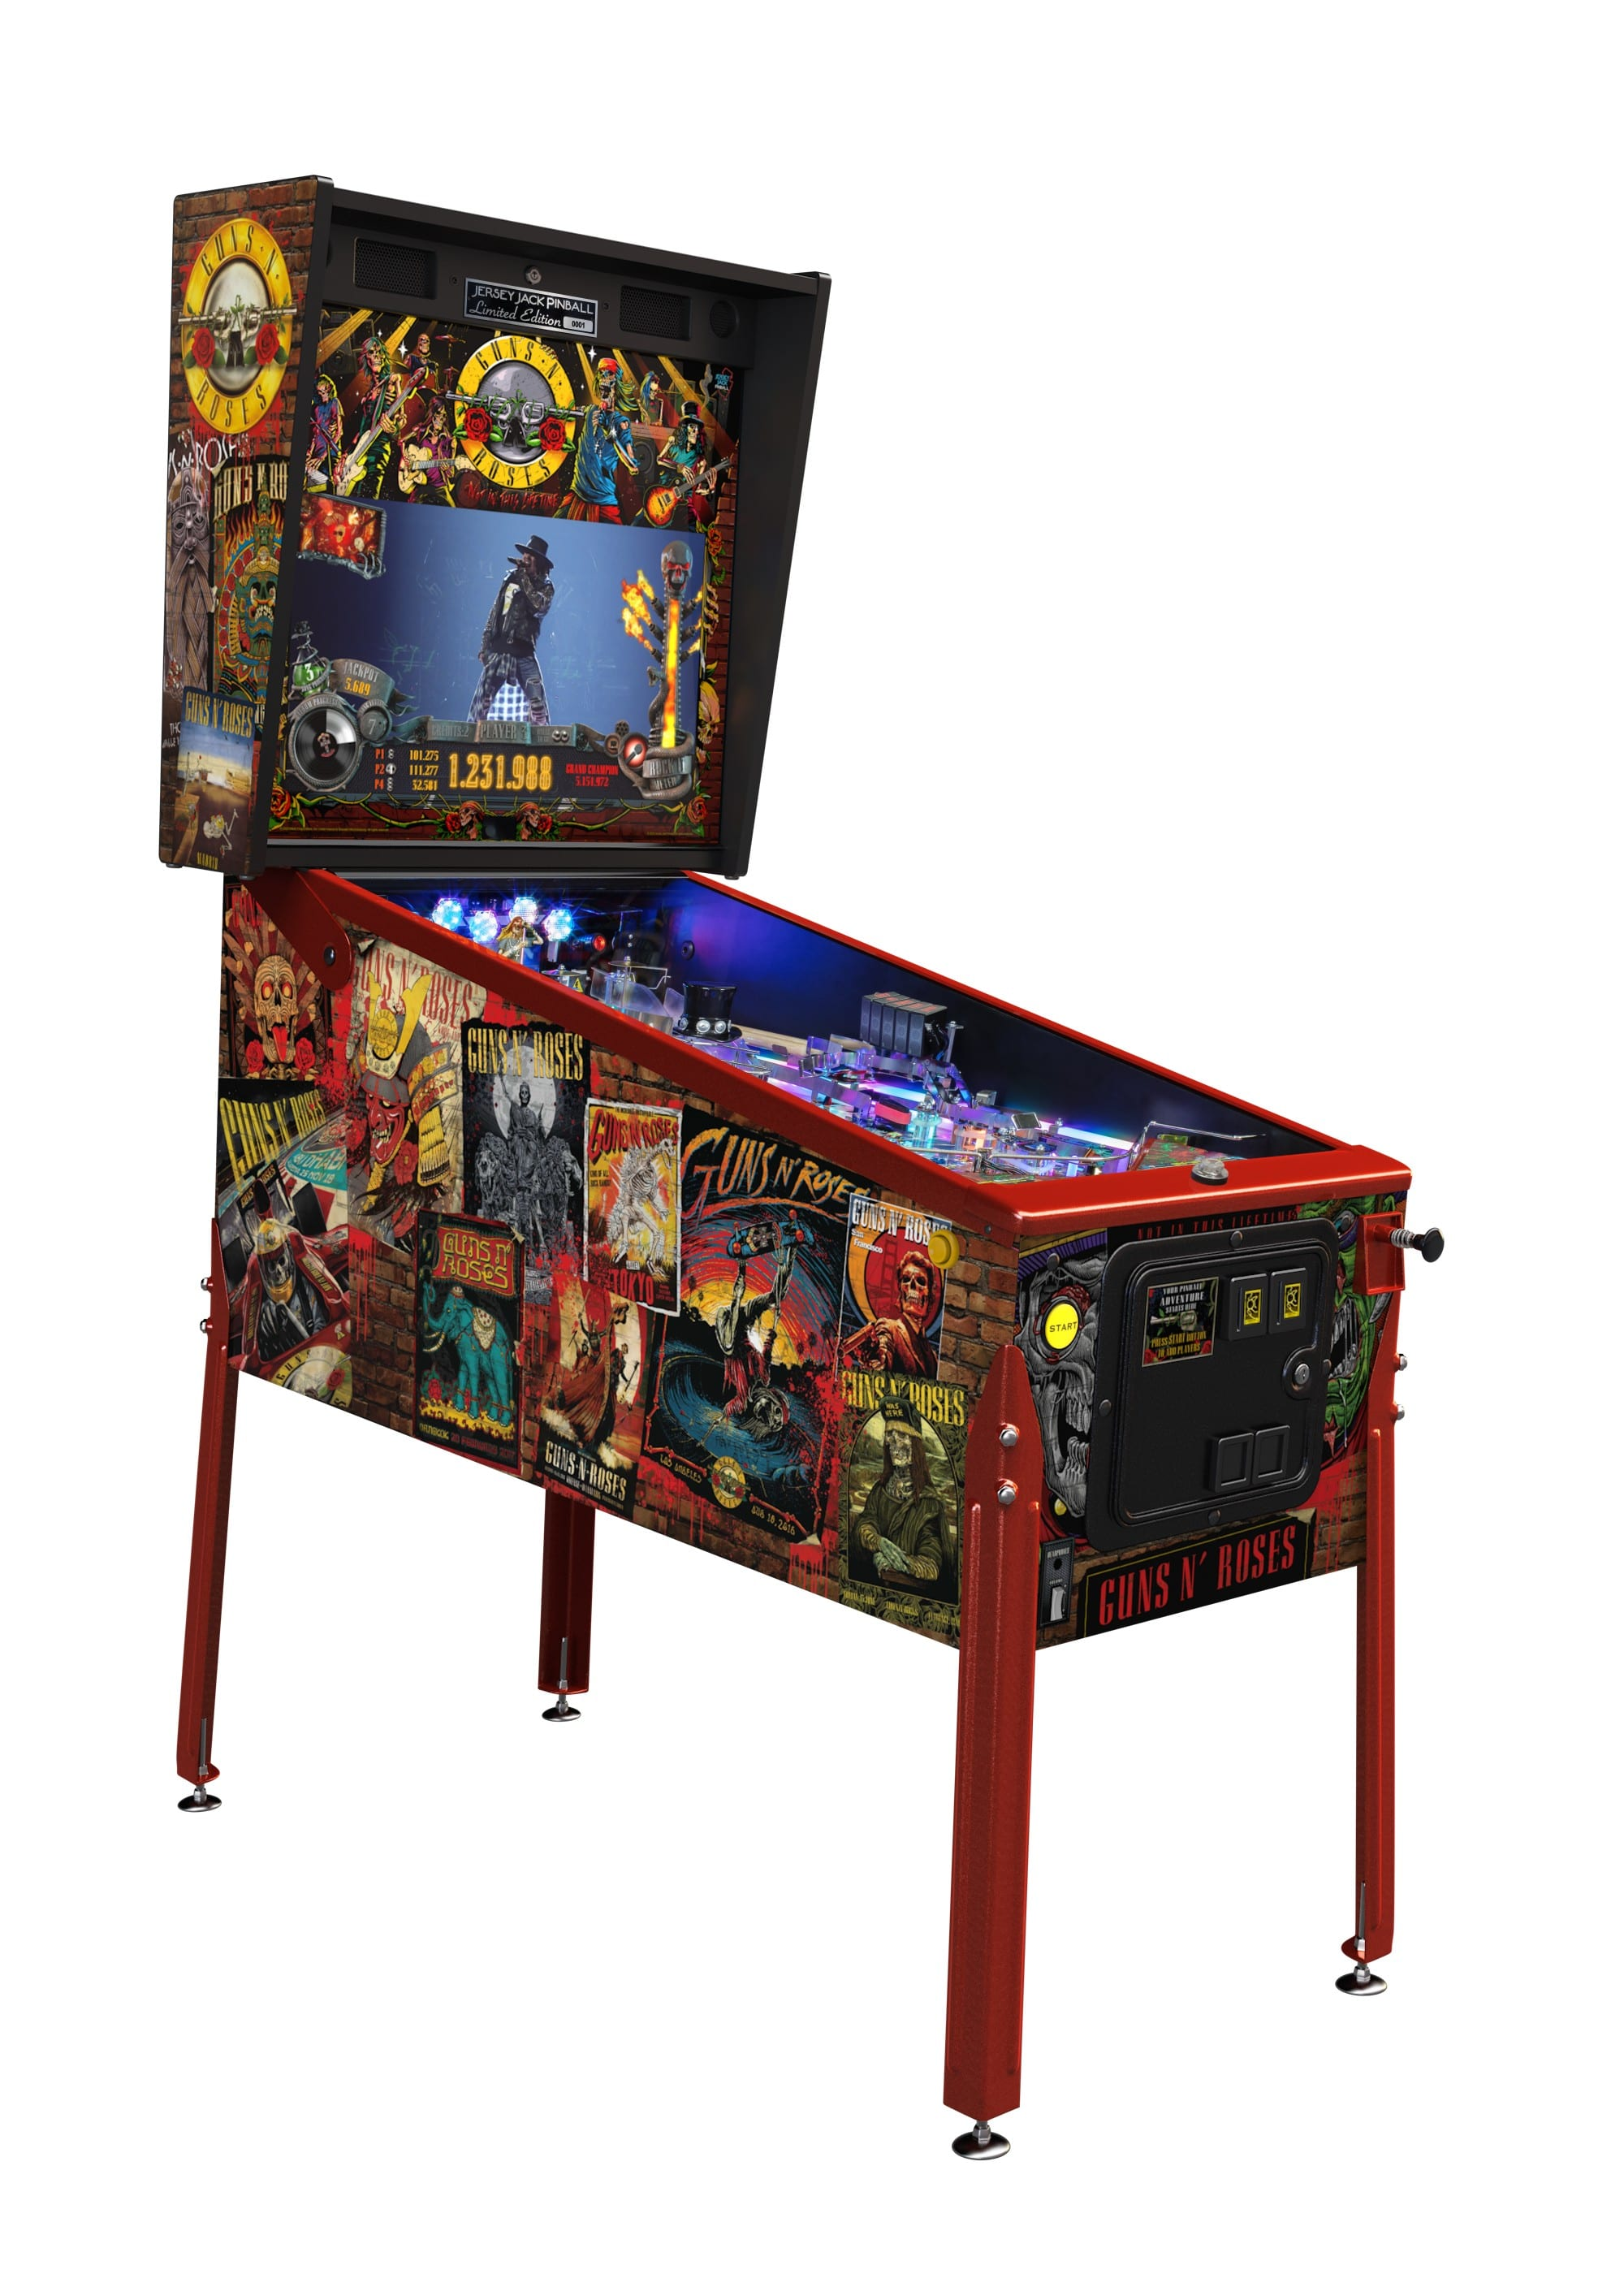 Limited edition guns and roses pinball machine for sale